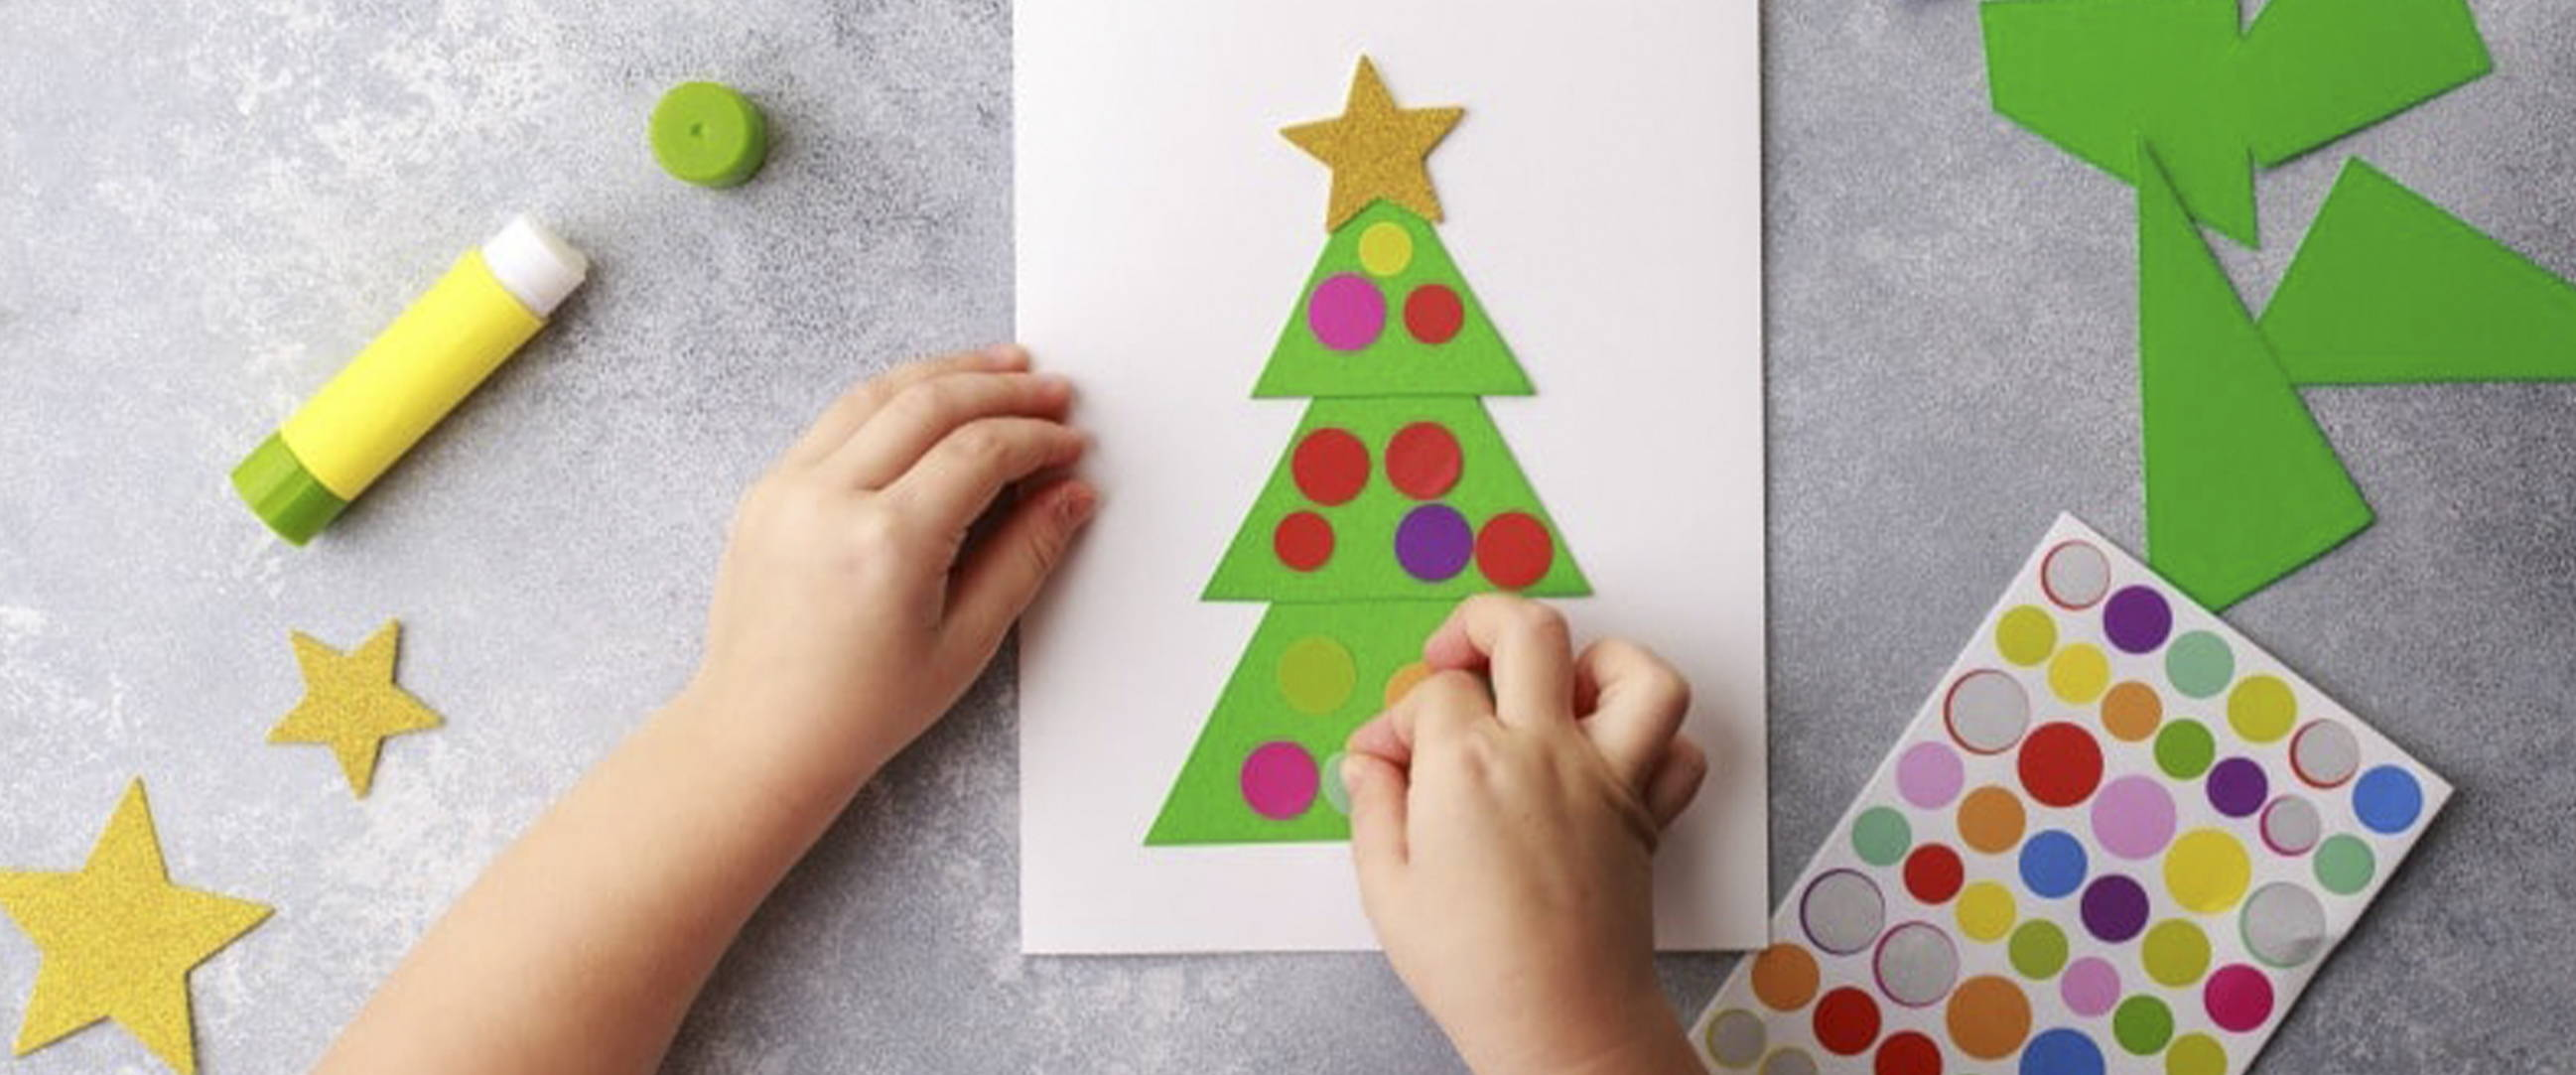 Eco friendly activities to do with the kids over the holidays